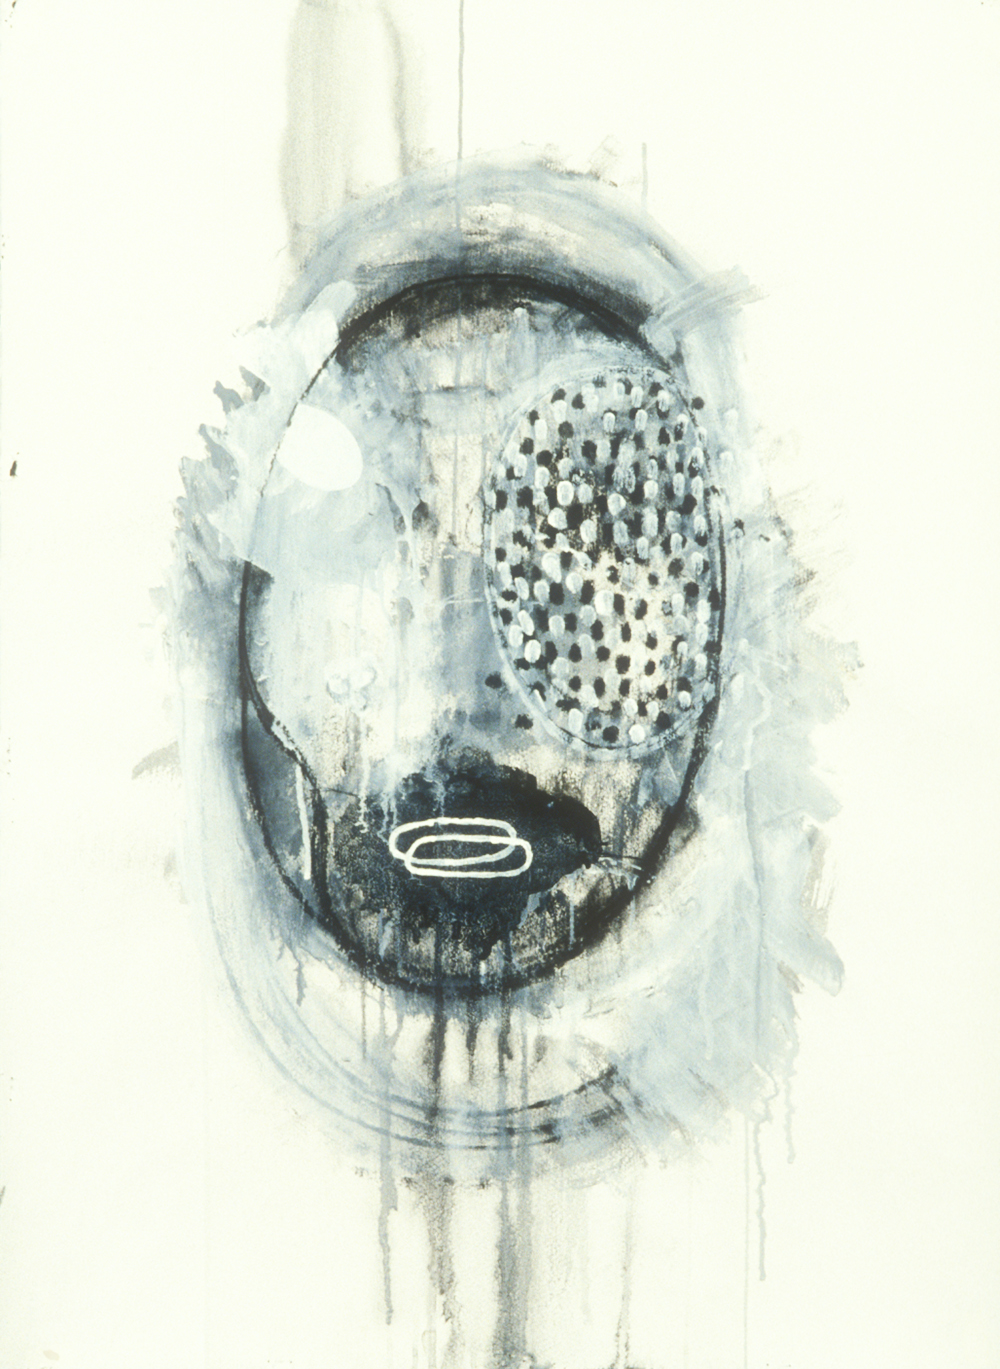 Elemental 29  , 1990, mixed media on paper, 29.5 x 21.5 in.